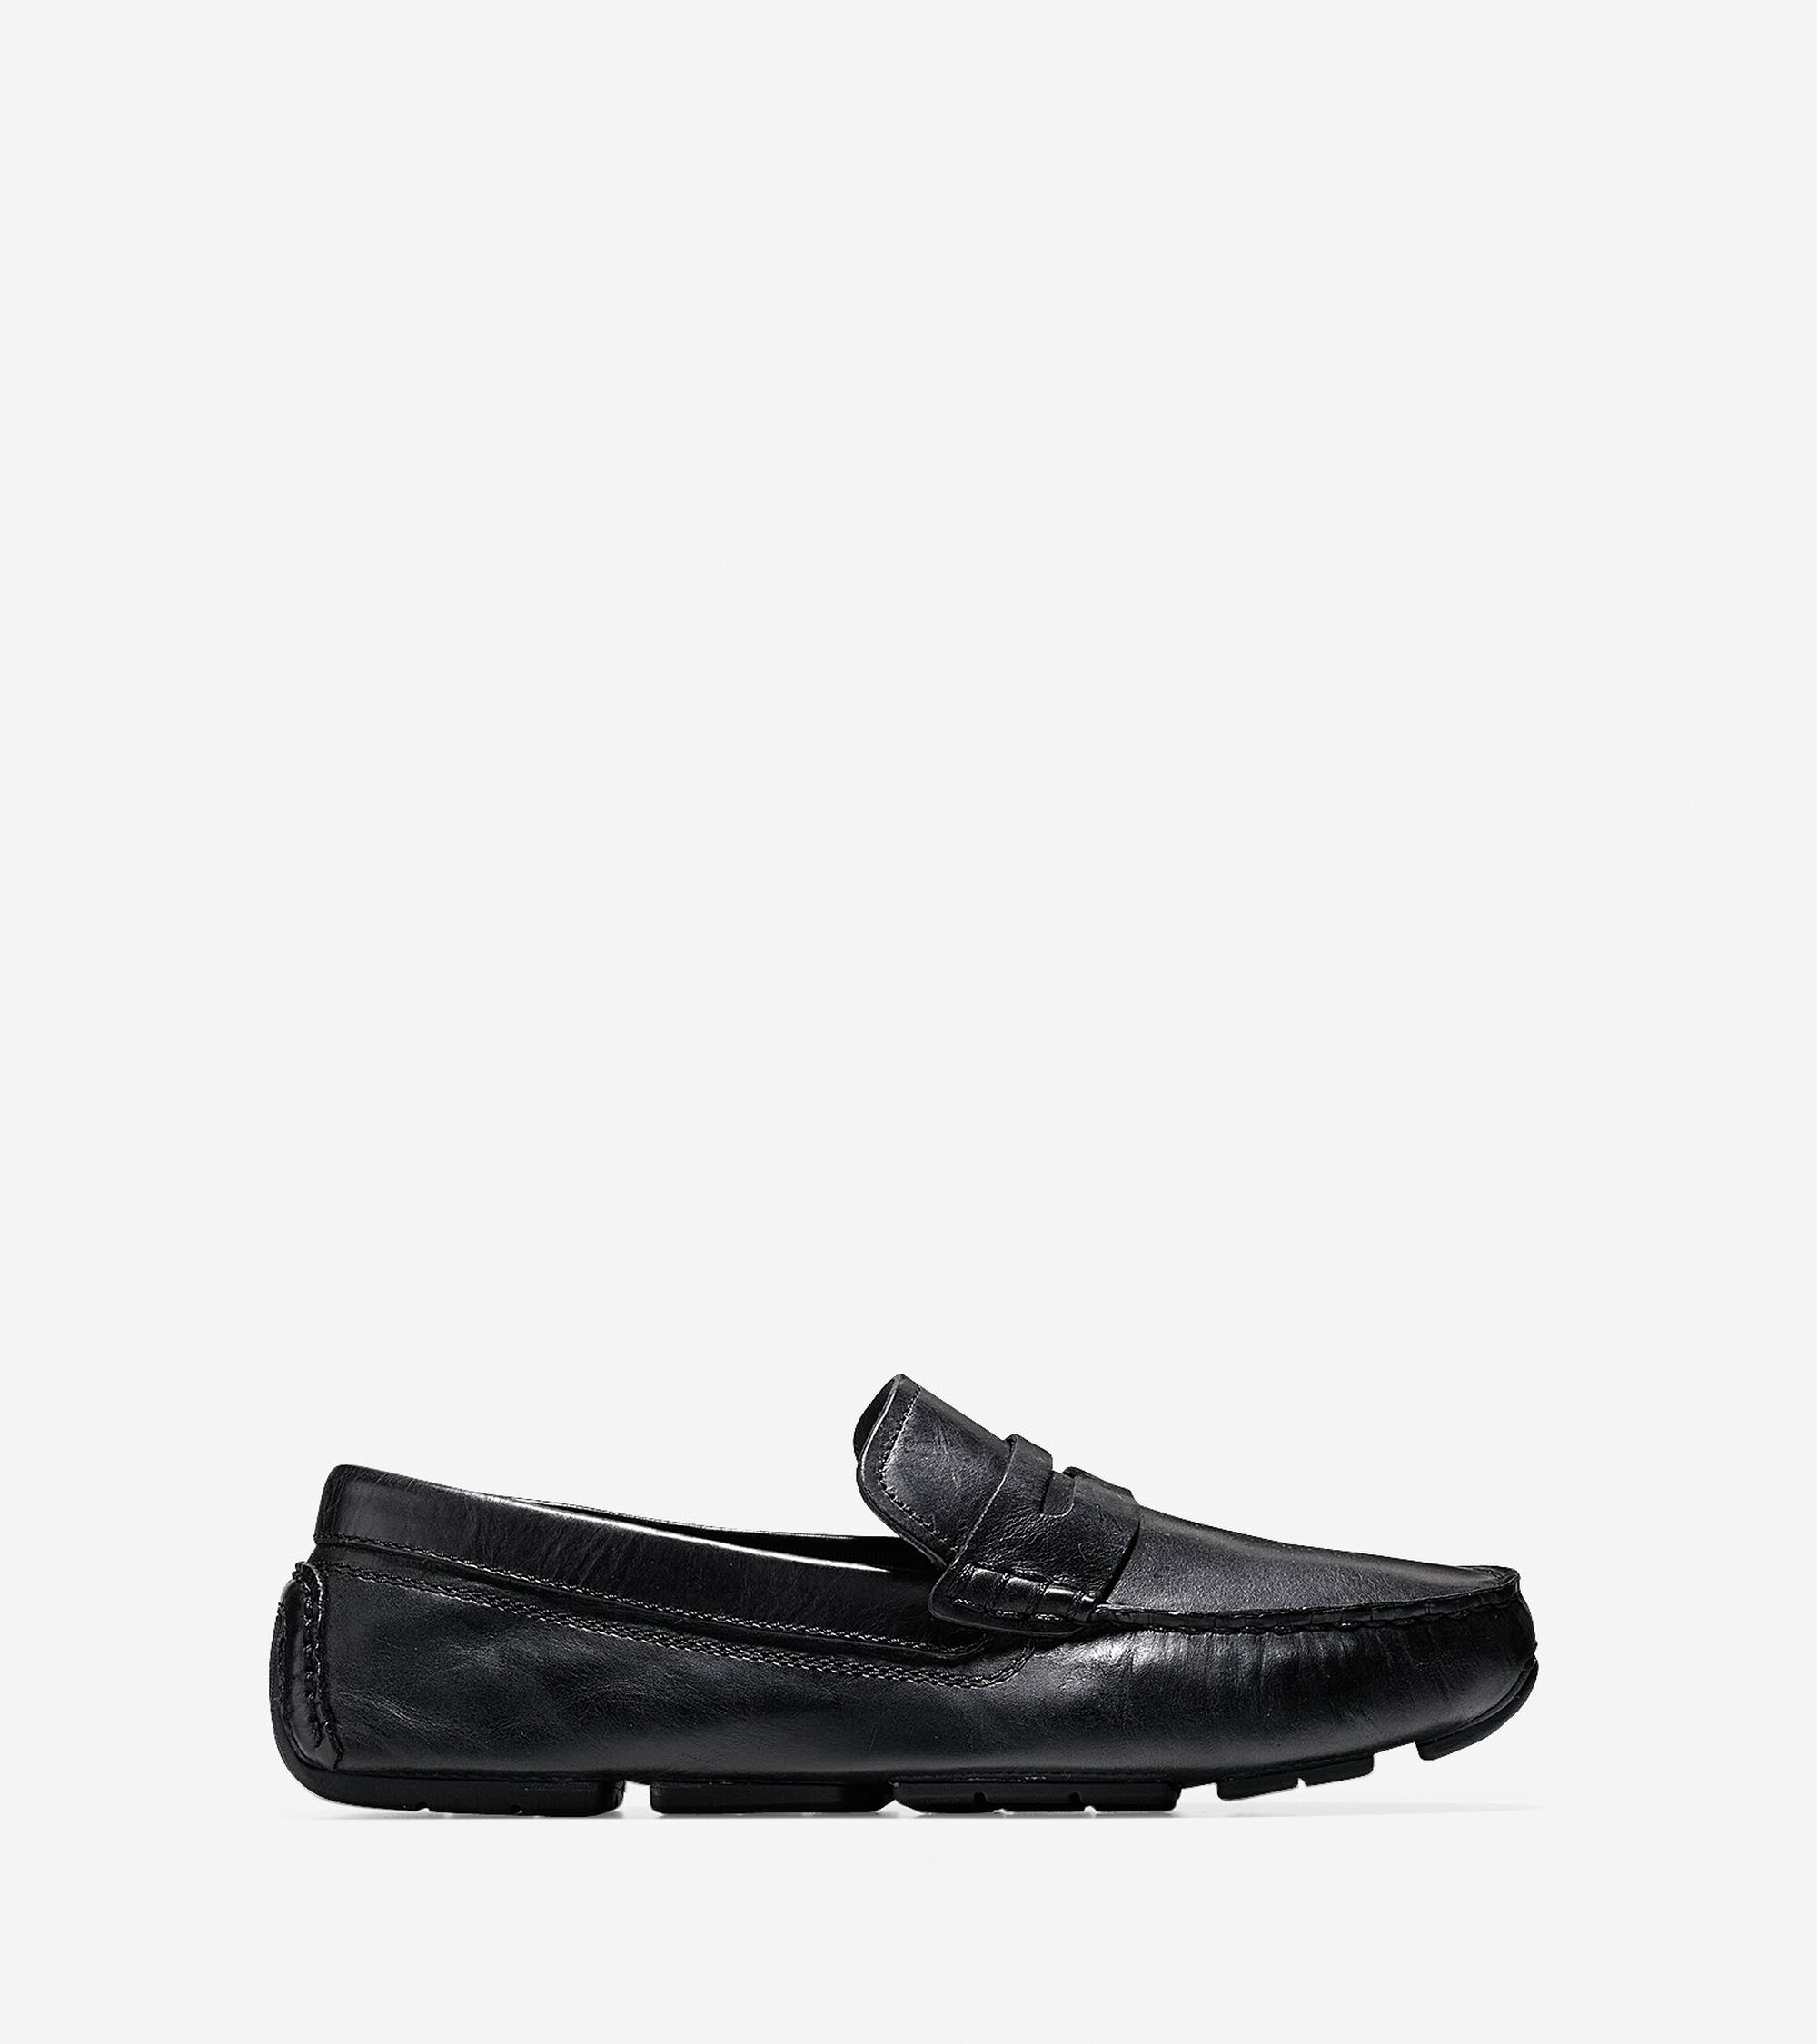 6681878403a Kelson Penny Loafers in Black   Mens Shoes